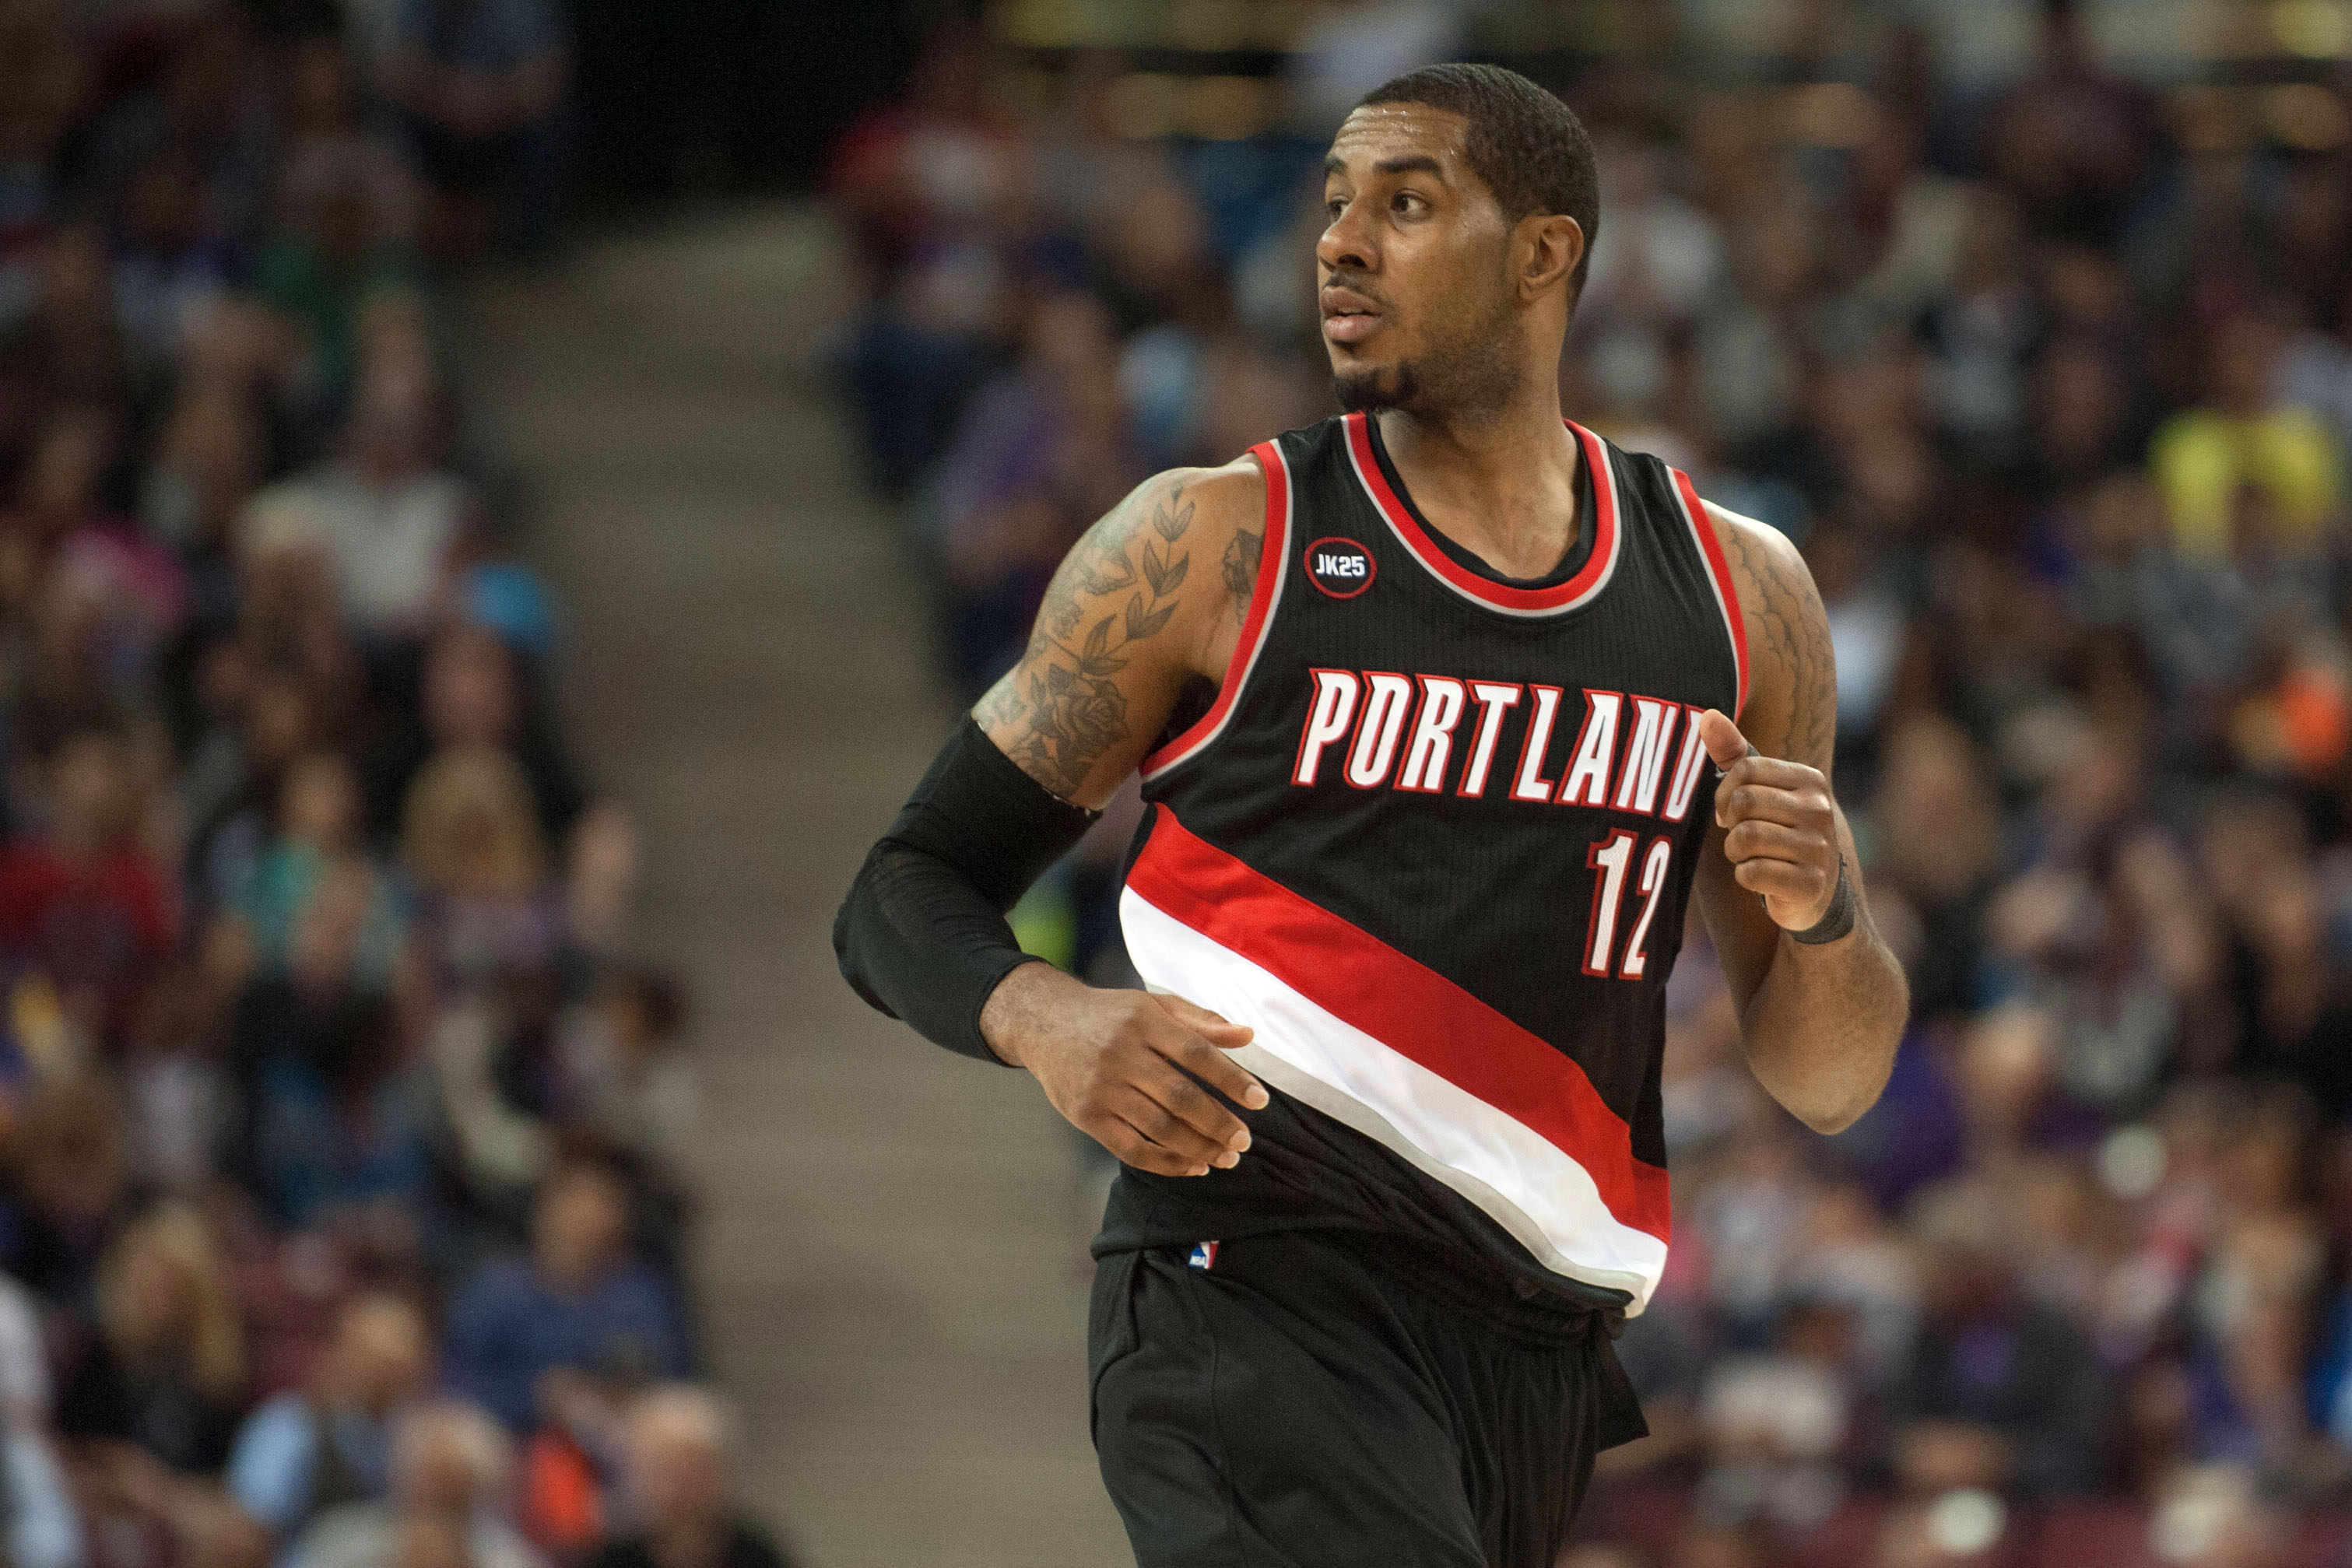 LaMarcus Aldridge Wallpapers High Resolution and Quality ...